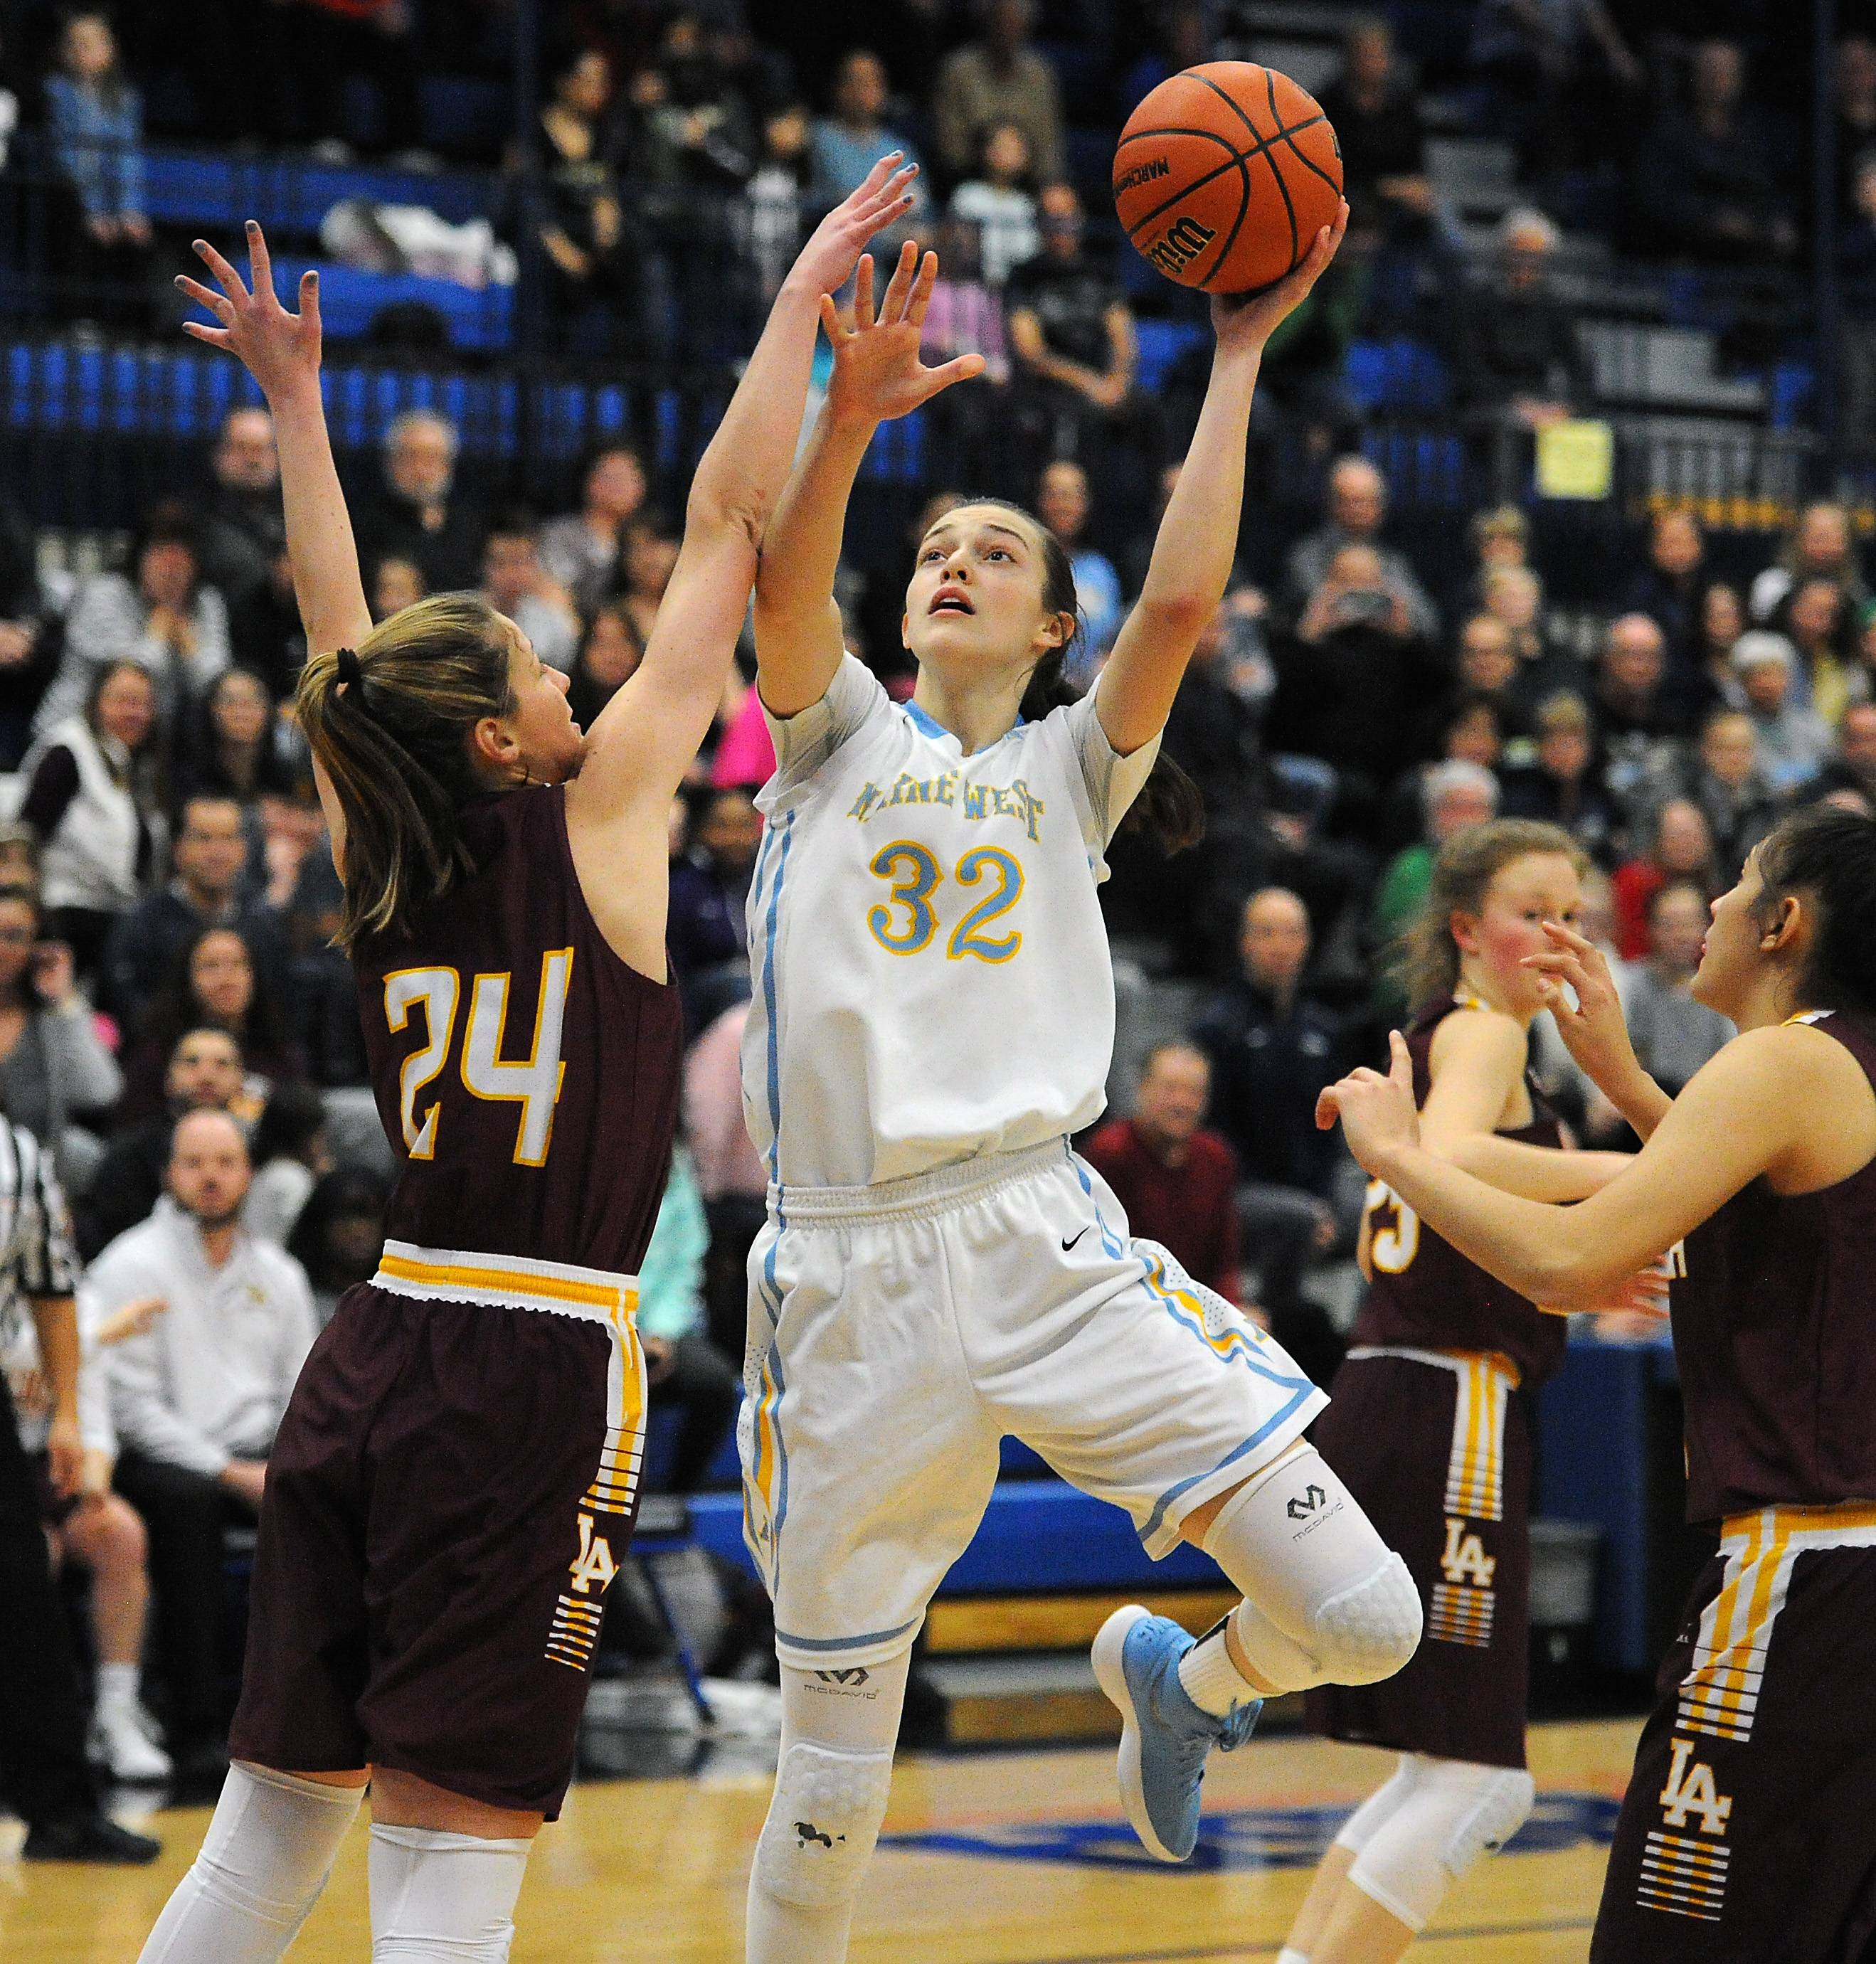 Maine West and Angela Dugalic (32) hope to prevent Geneva from advancing to the state championship game when the Warriors meet the Vikings in a Class 4A semifinal Friday at Redbird Arena in Normal.